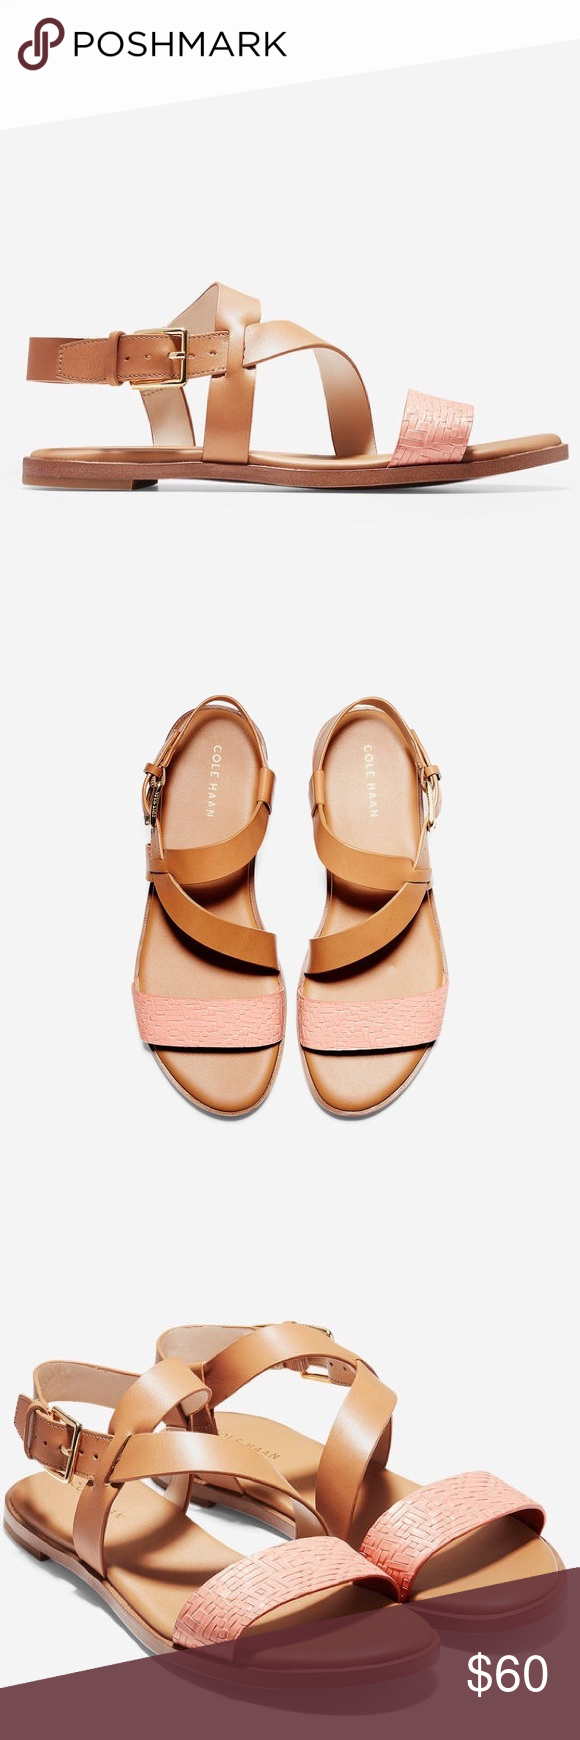 c1d15c702e4643 NWT FINDRA Strappy Sandal Cole Haan Super cute neutral colored sandal by  Cole Haan. Footbed